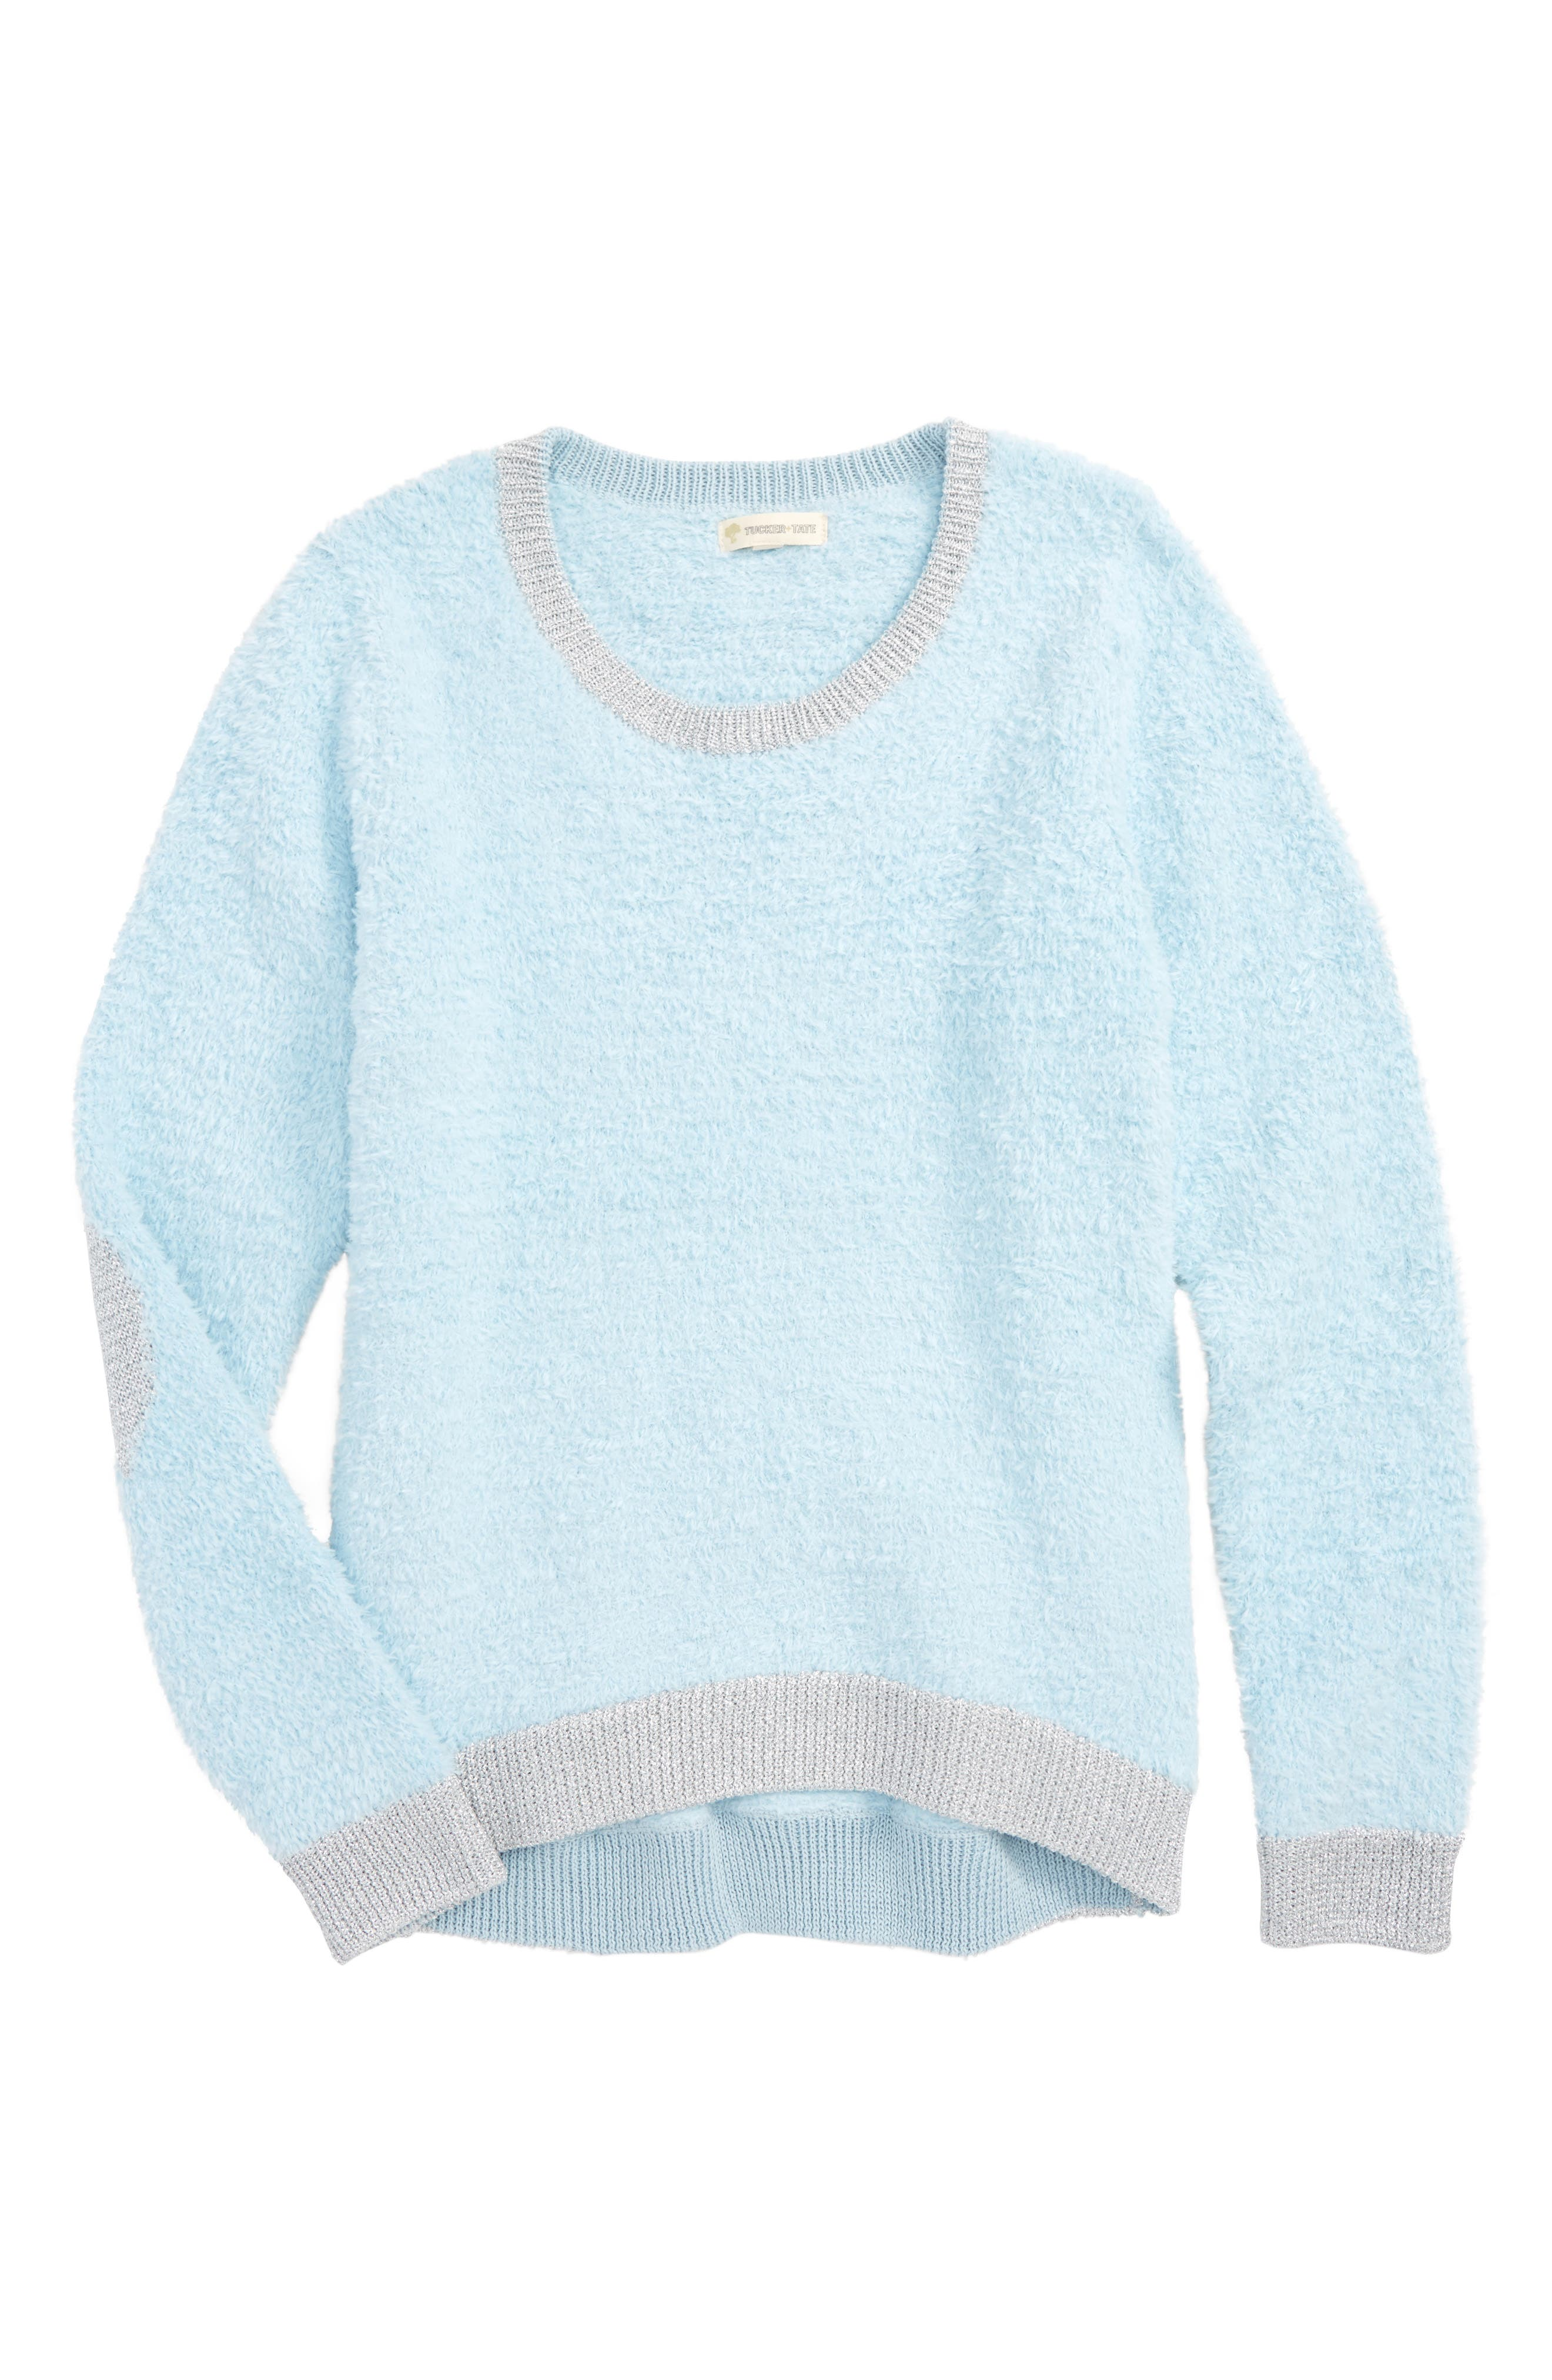 Teddy Pullover Sweater,                         Main,                         color, 450